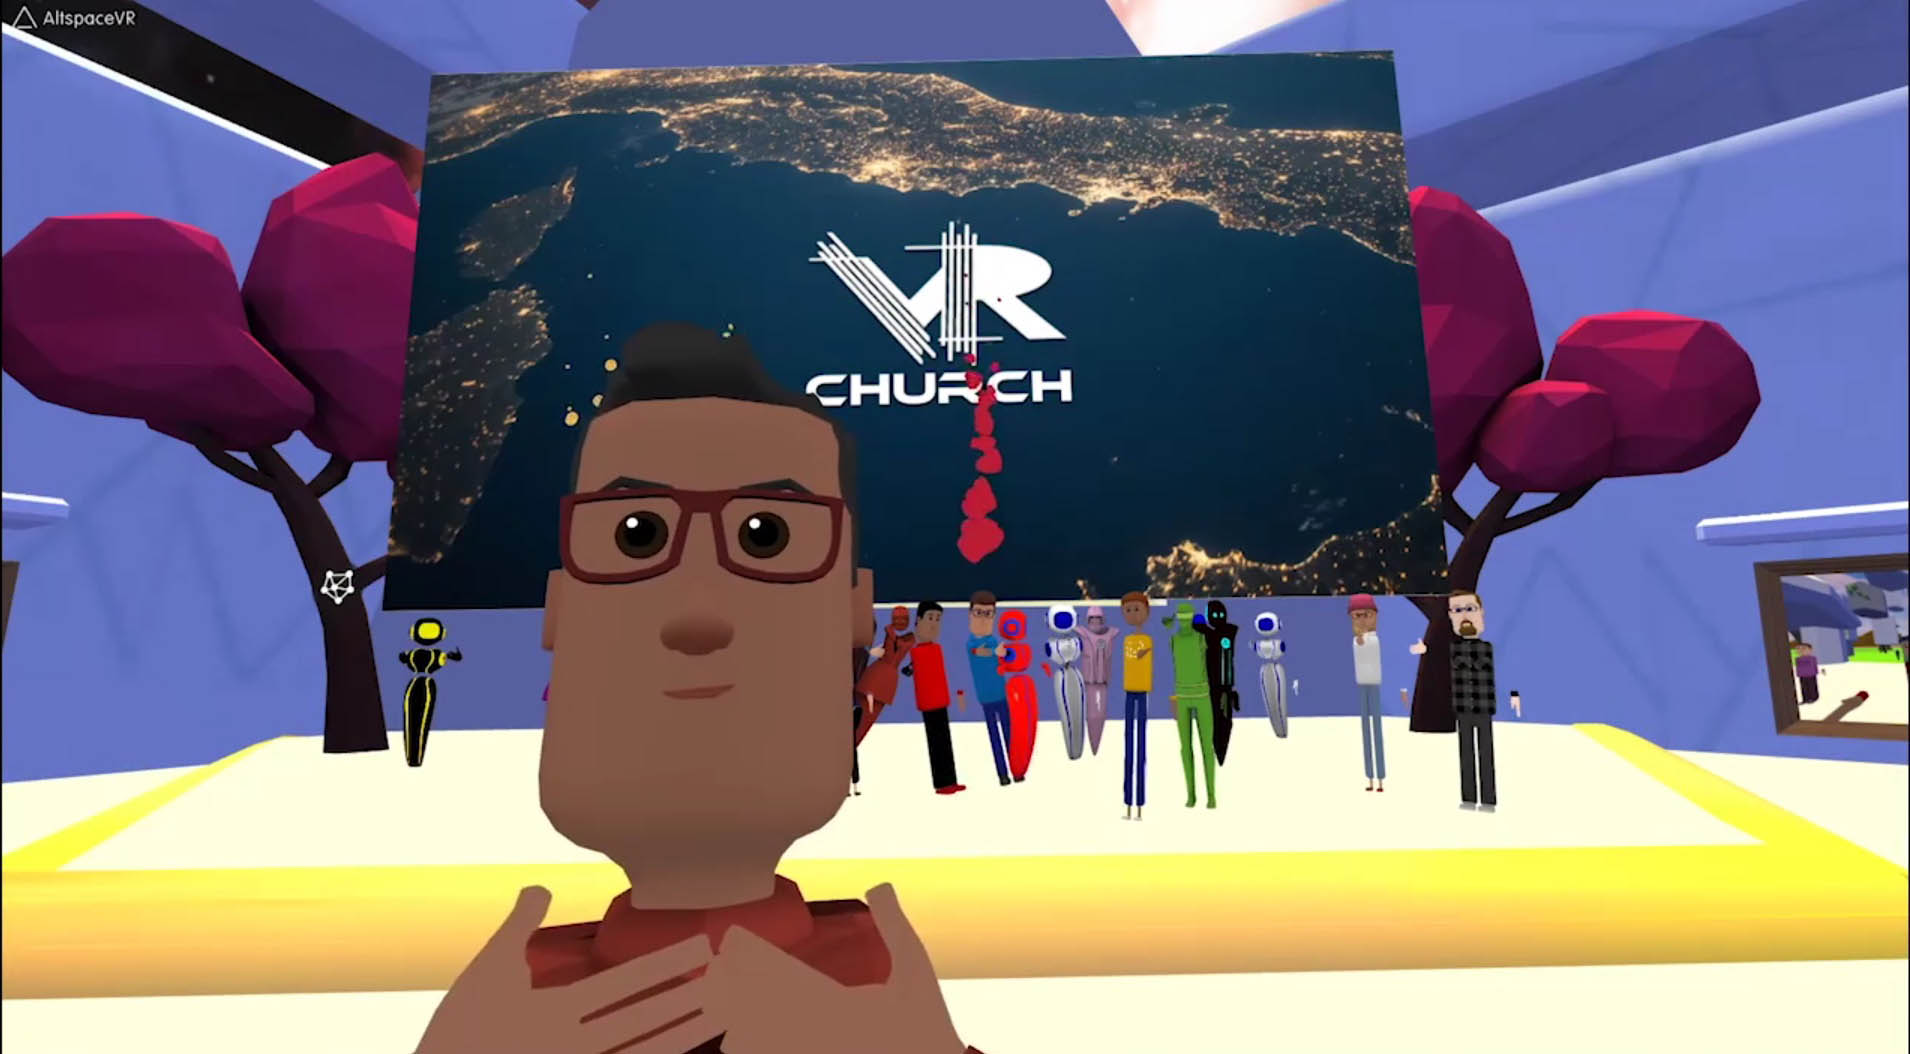 VR Church Has Weekly Services in Virtual Reality